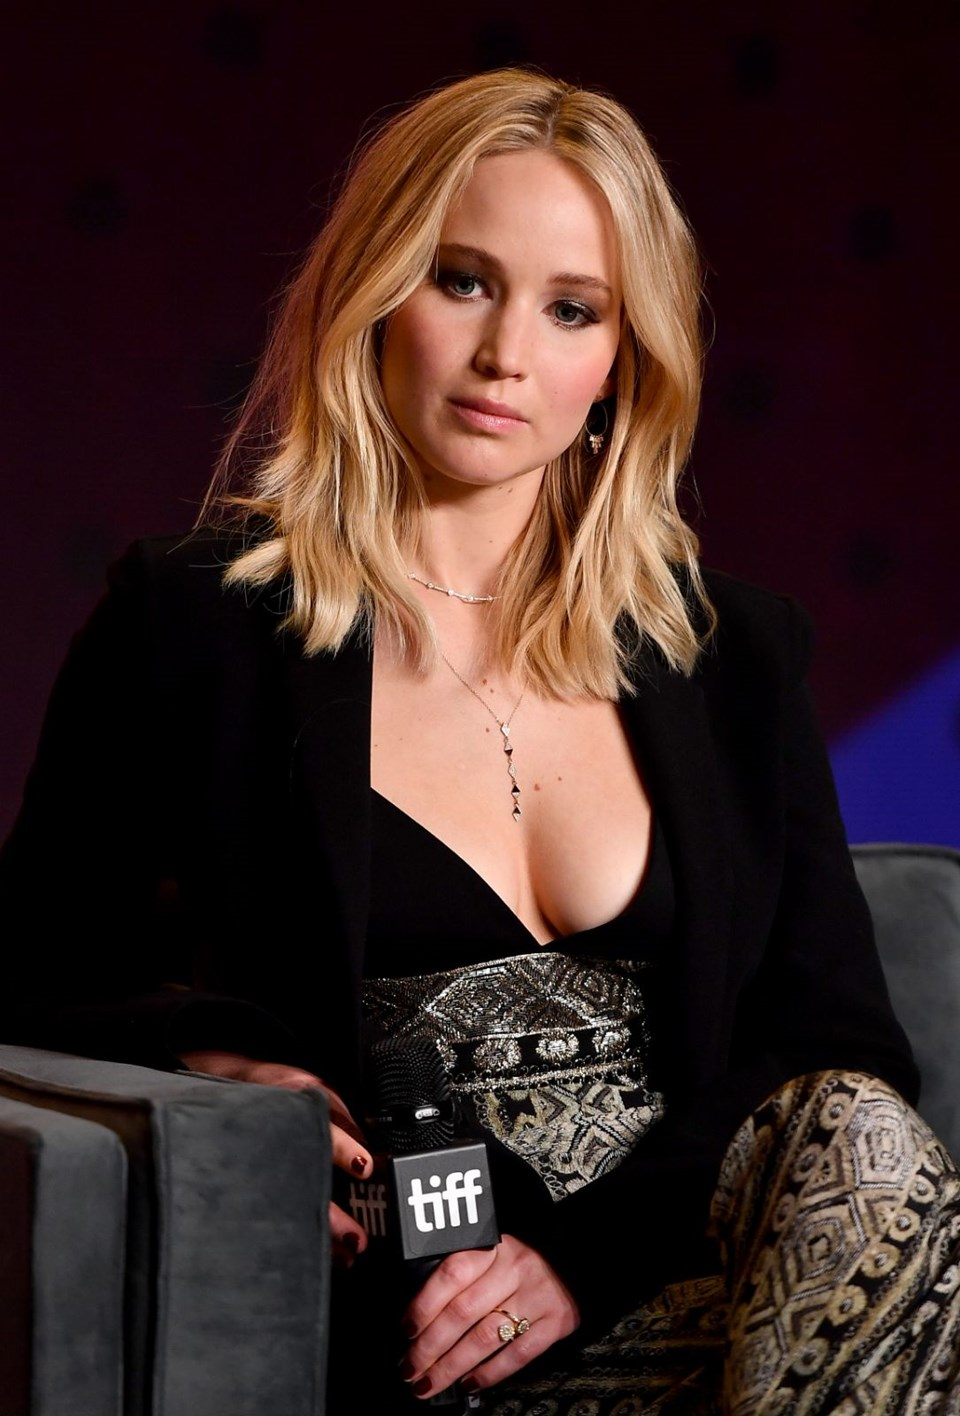 Jennifer Lawrence, Jennifer Lawrence fotoğrafları, Jennifer Lawrence kimdir